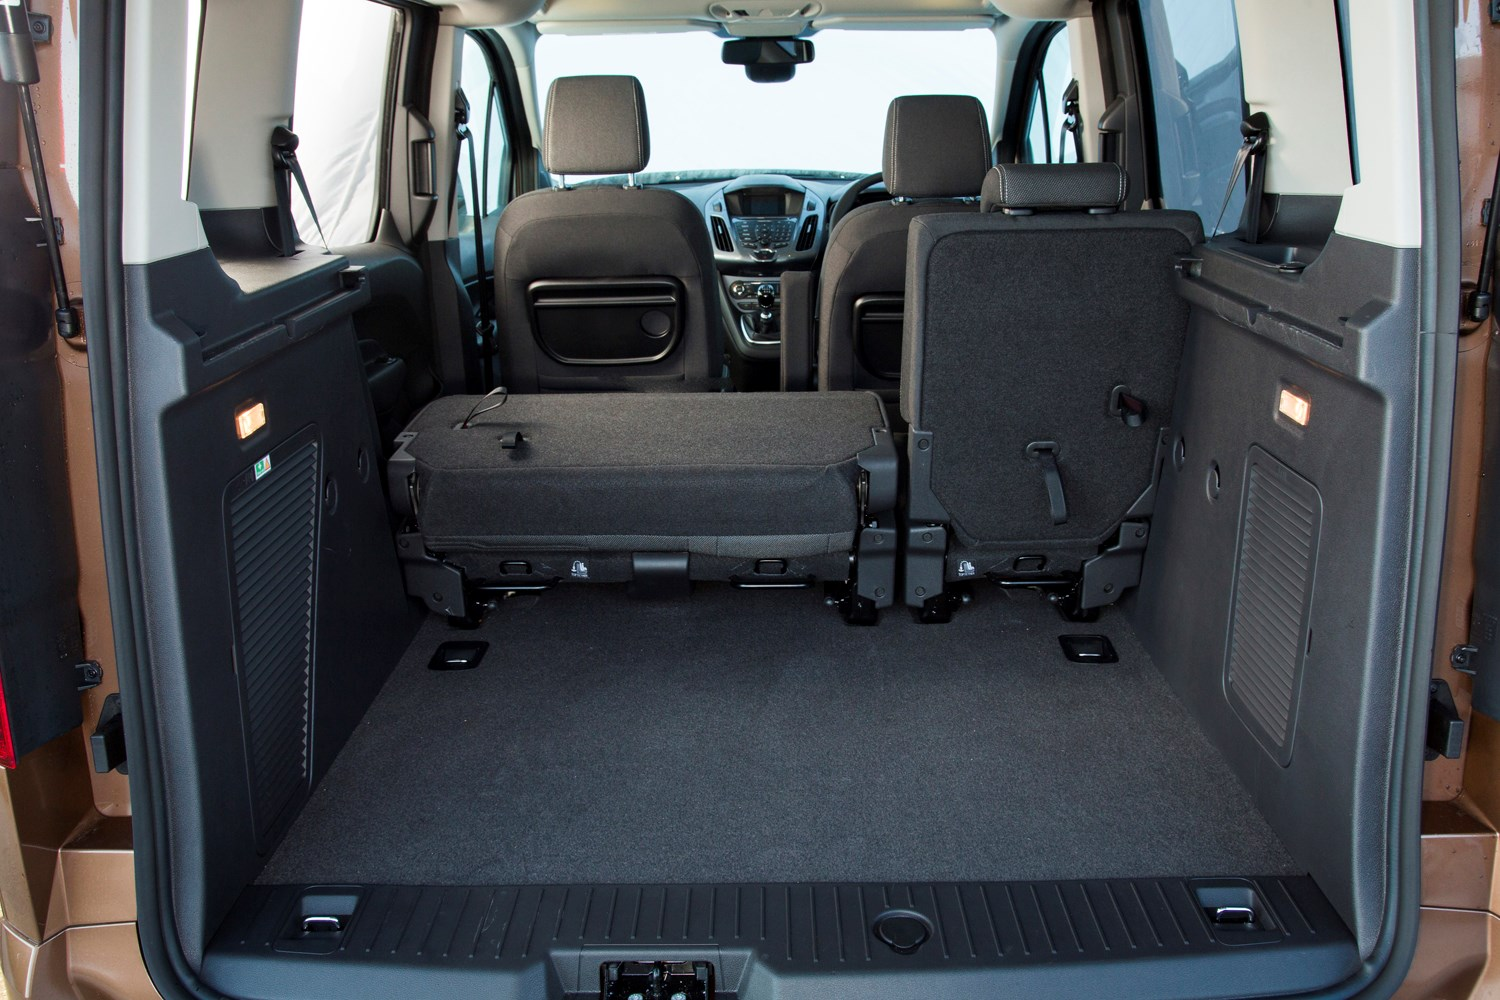 Ford tourneo connect estate review 2013 parkers for Interiores 2016